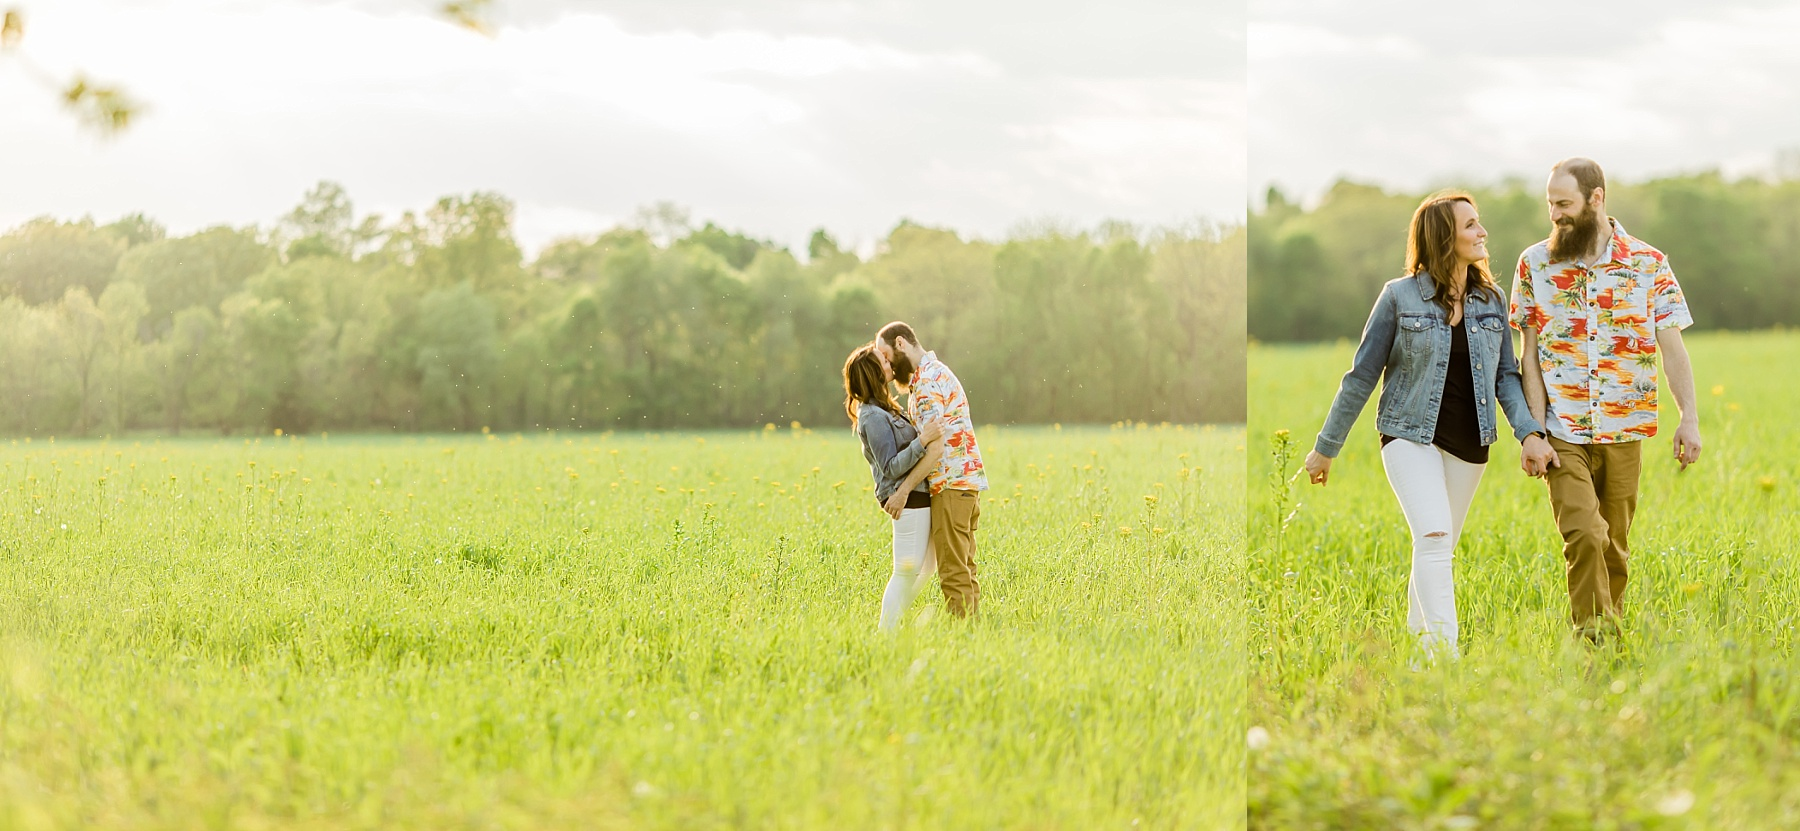 monticello indiana wedding engagement photography simple adventure weird_0049.jpg